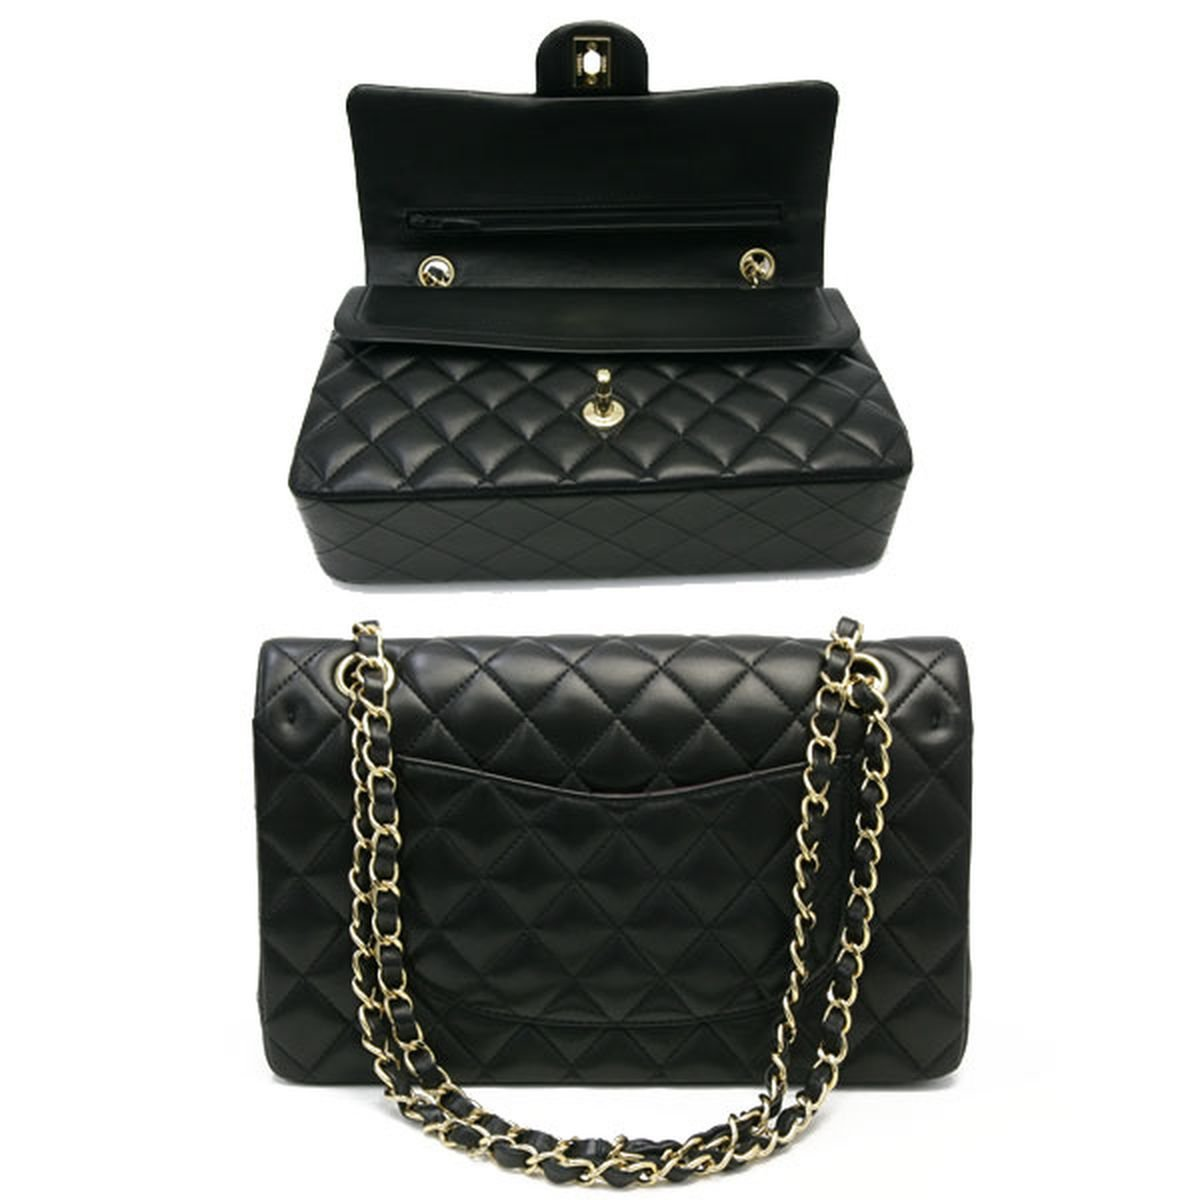 Amazon.com  CHANEL Lambskin Classic Flap Bag with Gold Chain  Shoes 0f4346060